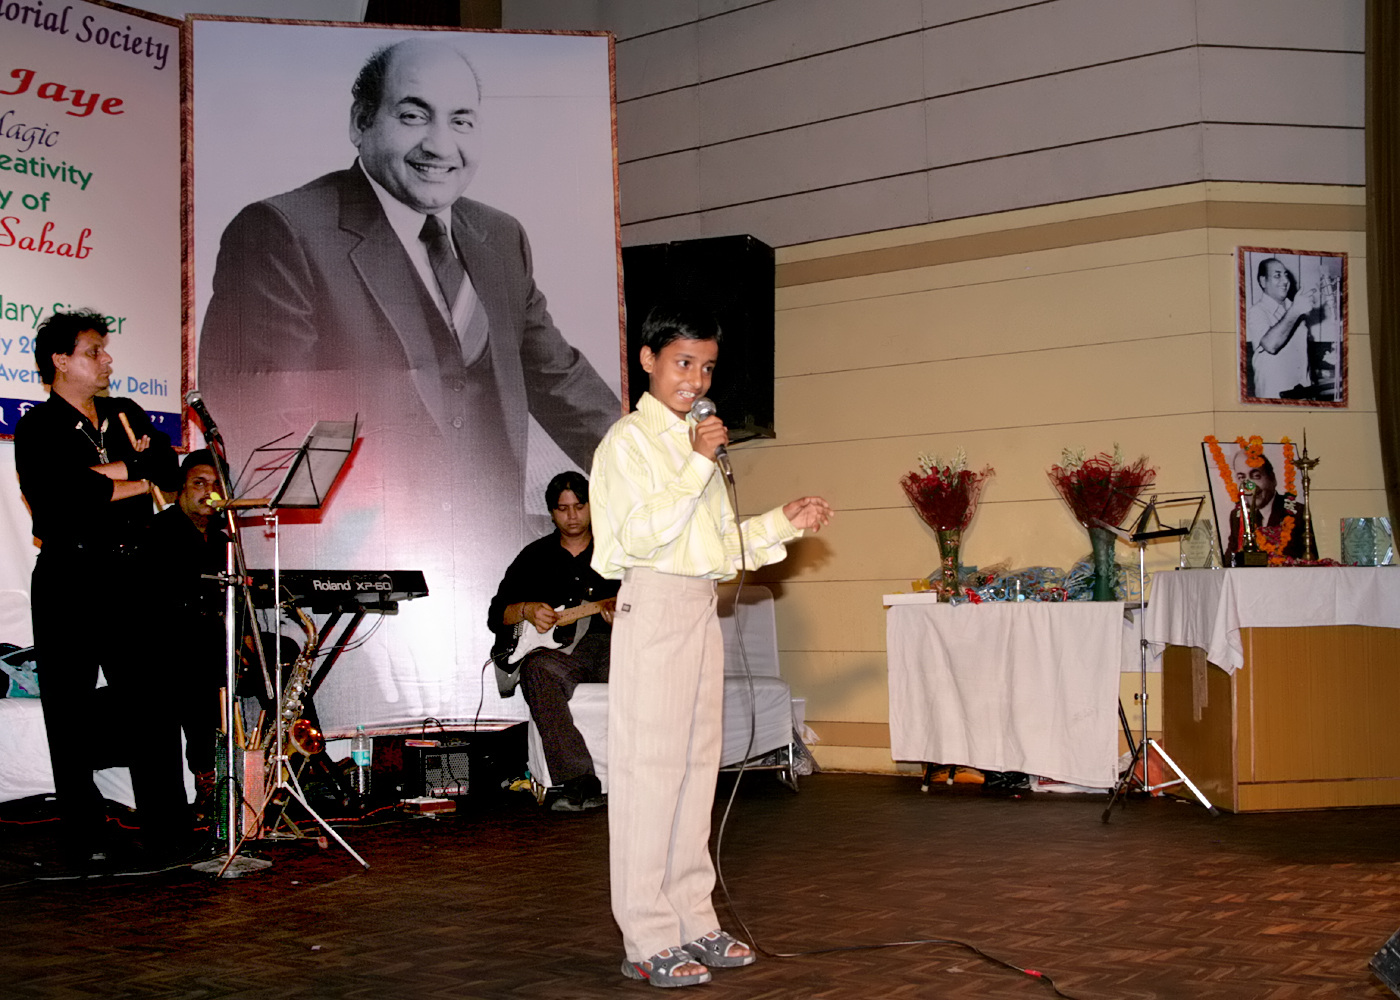 19(300708)-A young artist performing Rafi Sahab�s song